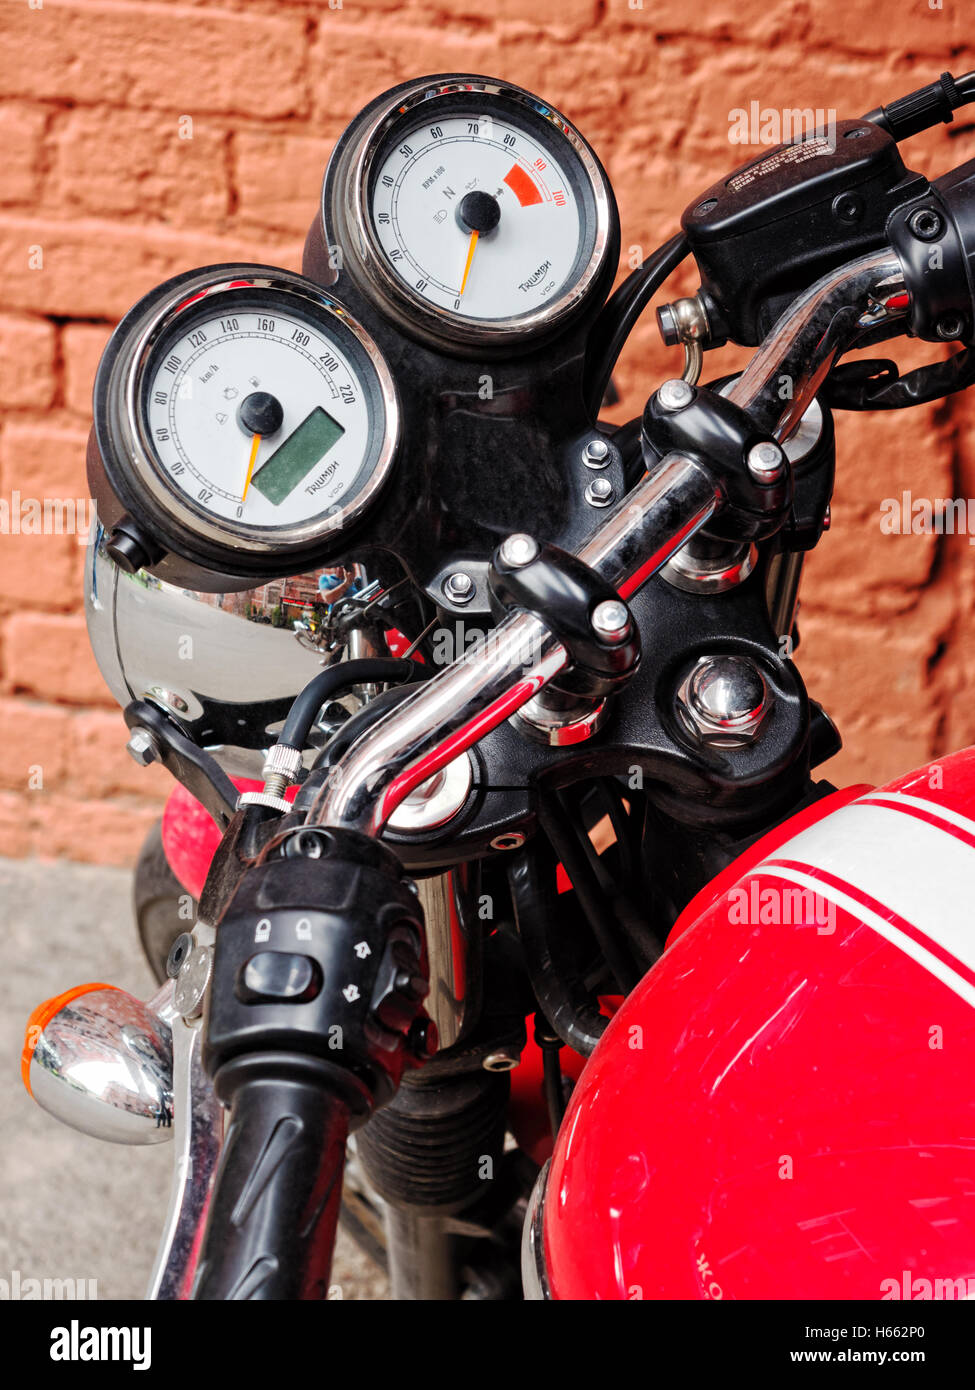 Moscow, Russia - June 18, 2016: Close-up of Triumph motorcycle dashboard - Stock Image